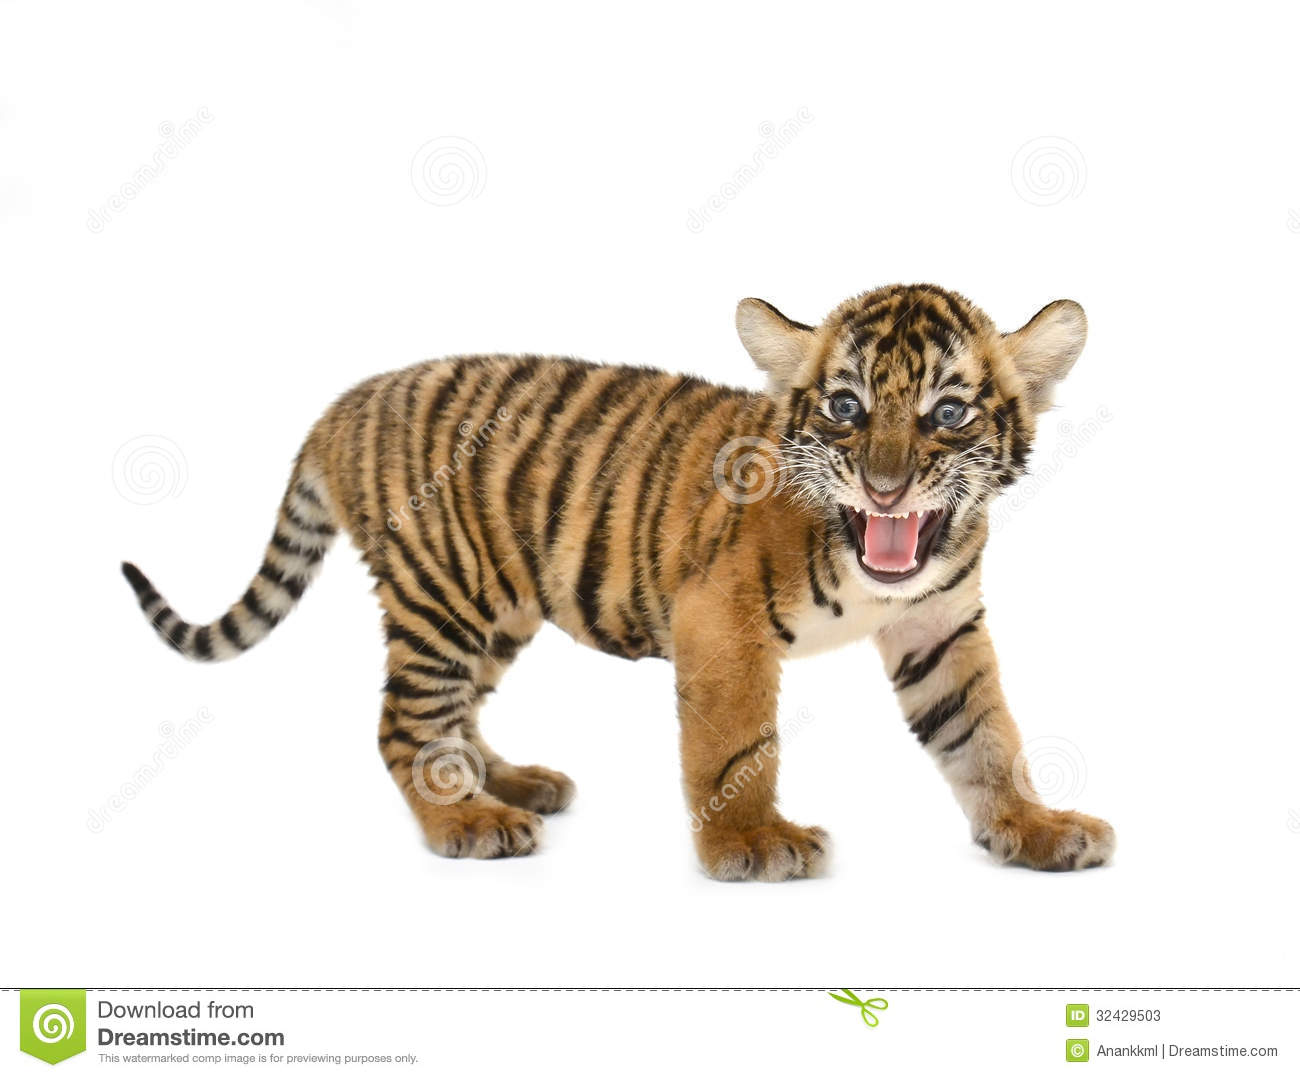 White Tiger clipart bengal tiger Tiger bengal #76 clipart 69